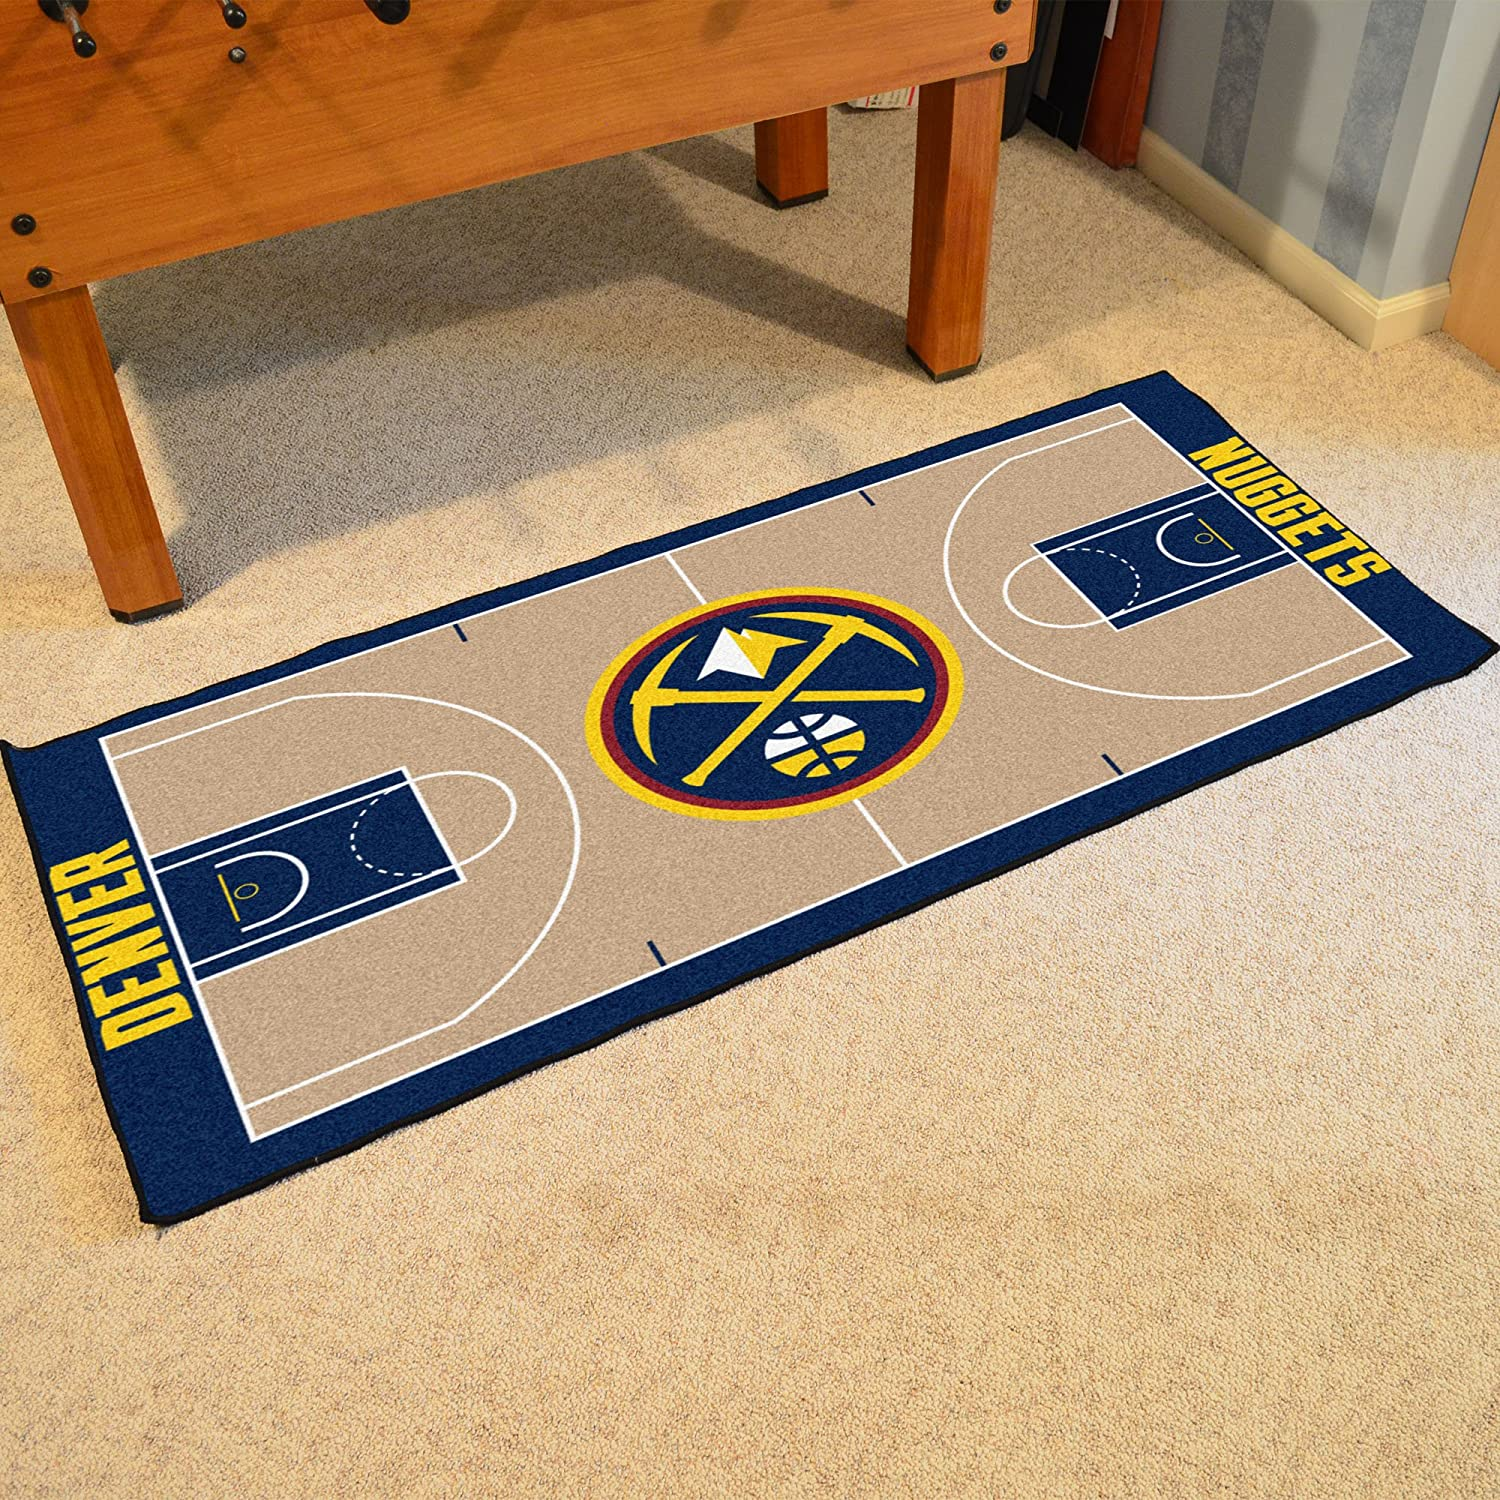 FANMATS NBA Denver Nuggets Nylon Face NBA Court Runner-Small